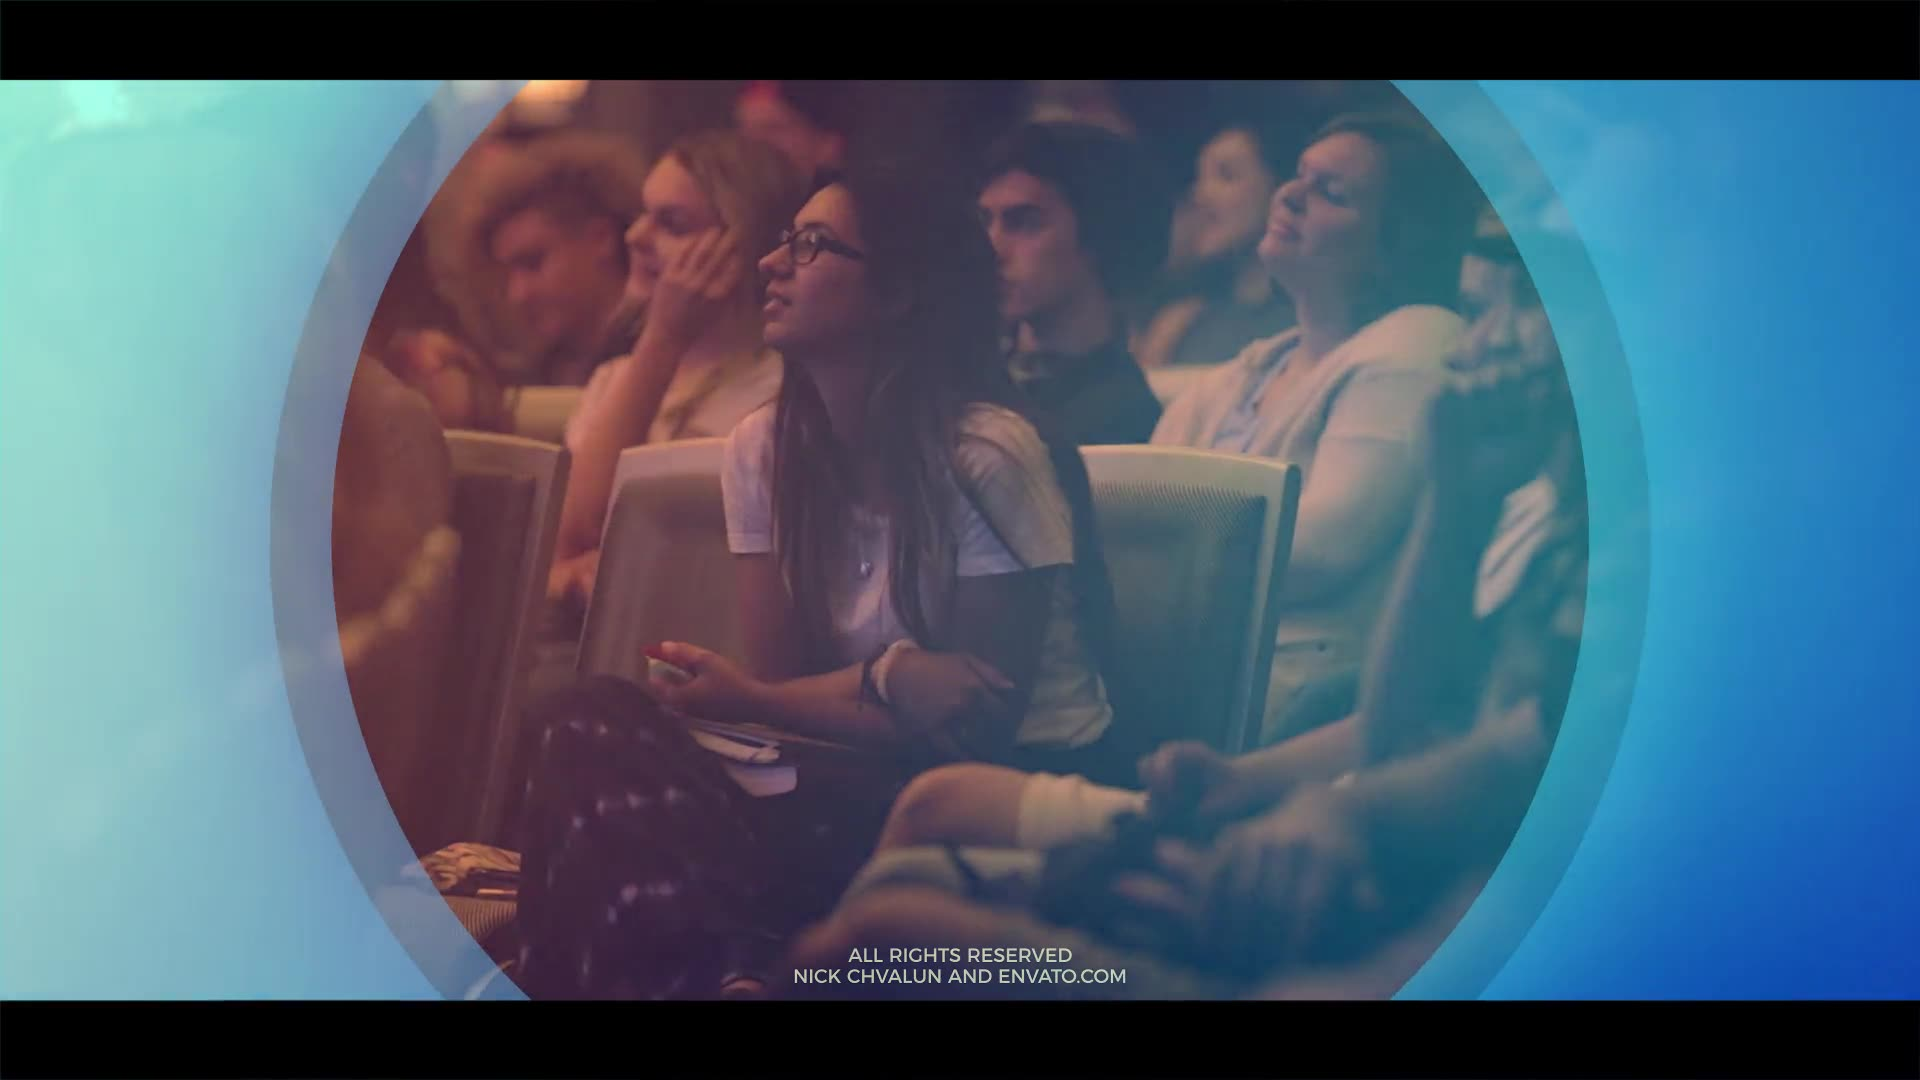 Event Promo - Download Videohive 20744858